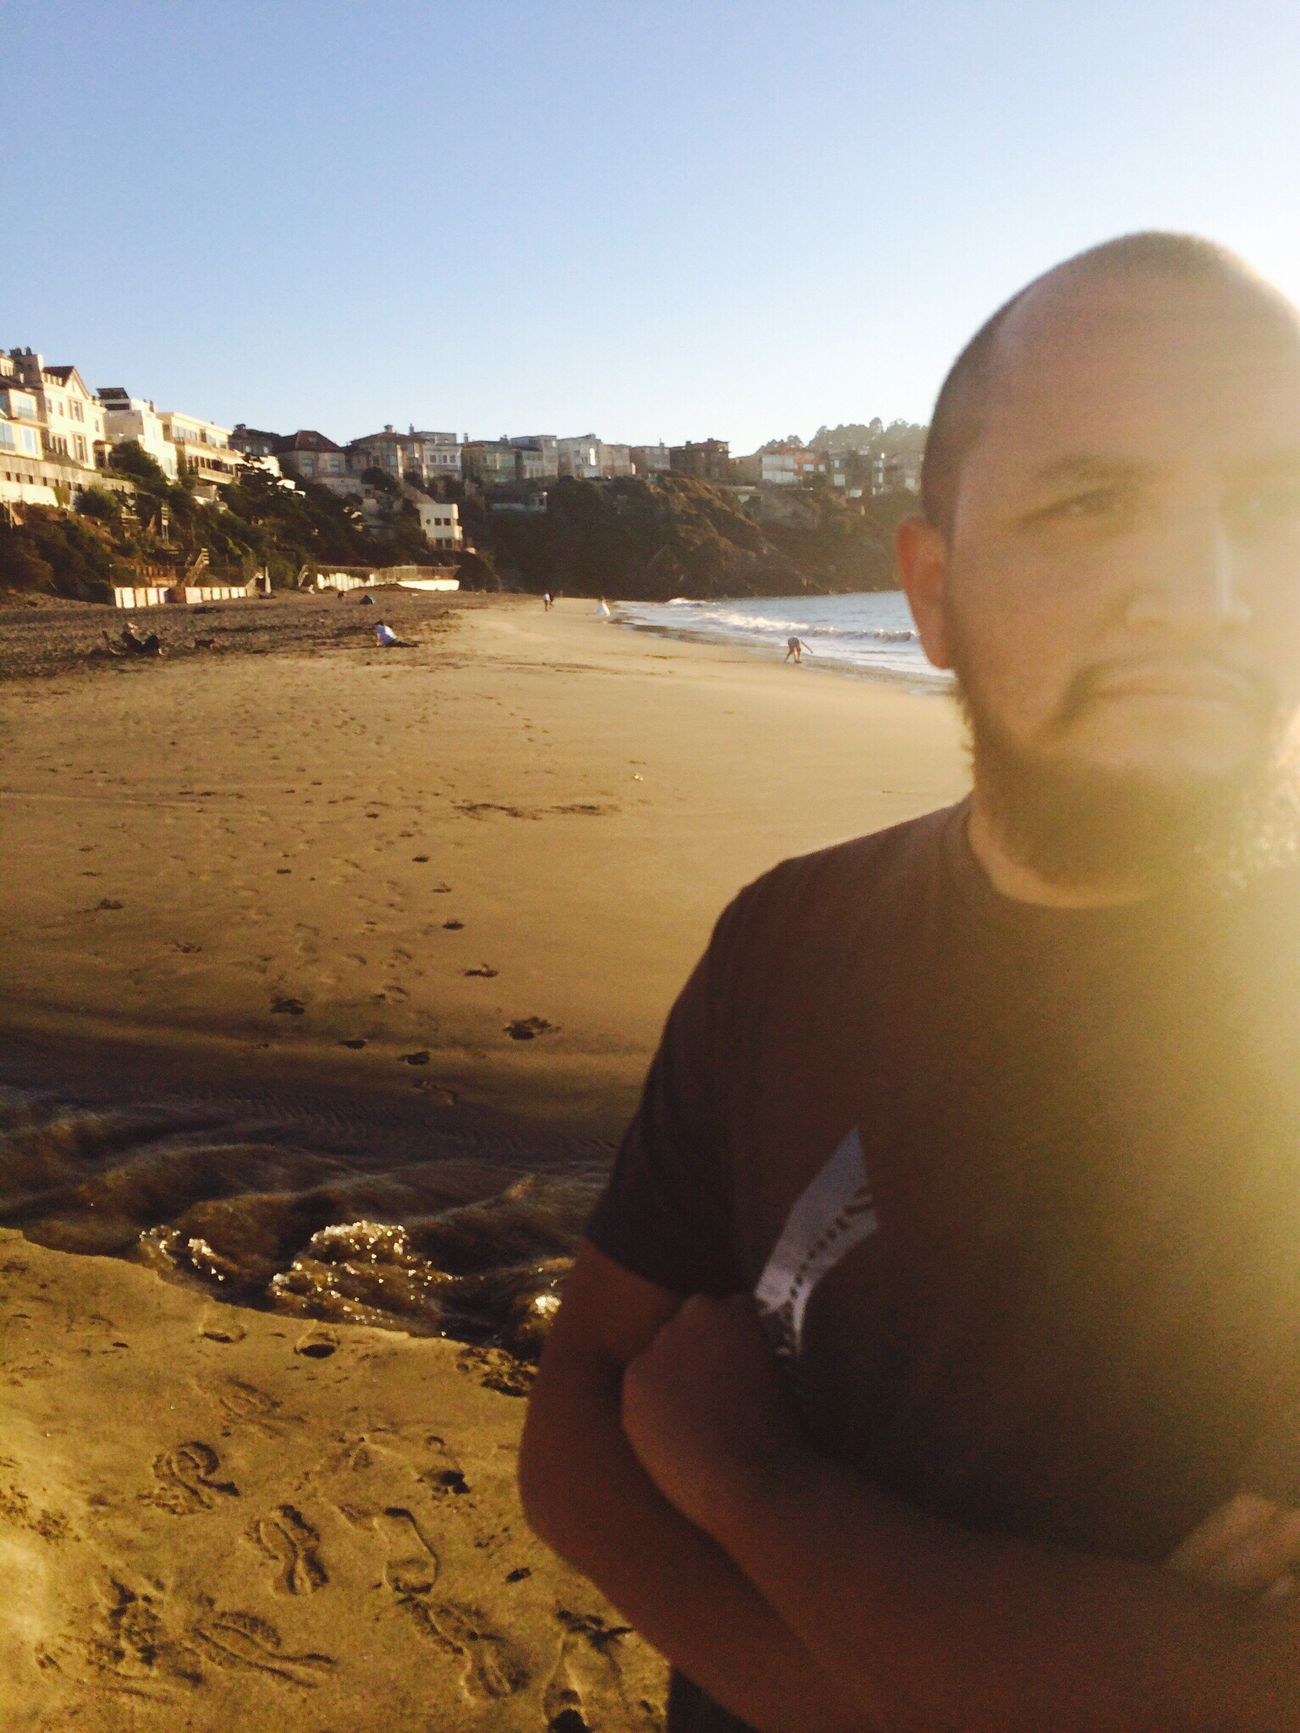 Random shot taken at baker beach in San Francisco ,ca. Annoyed him for pointing the camera in his direction . #nofilter#noedit